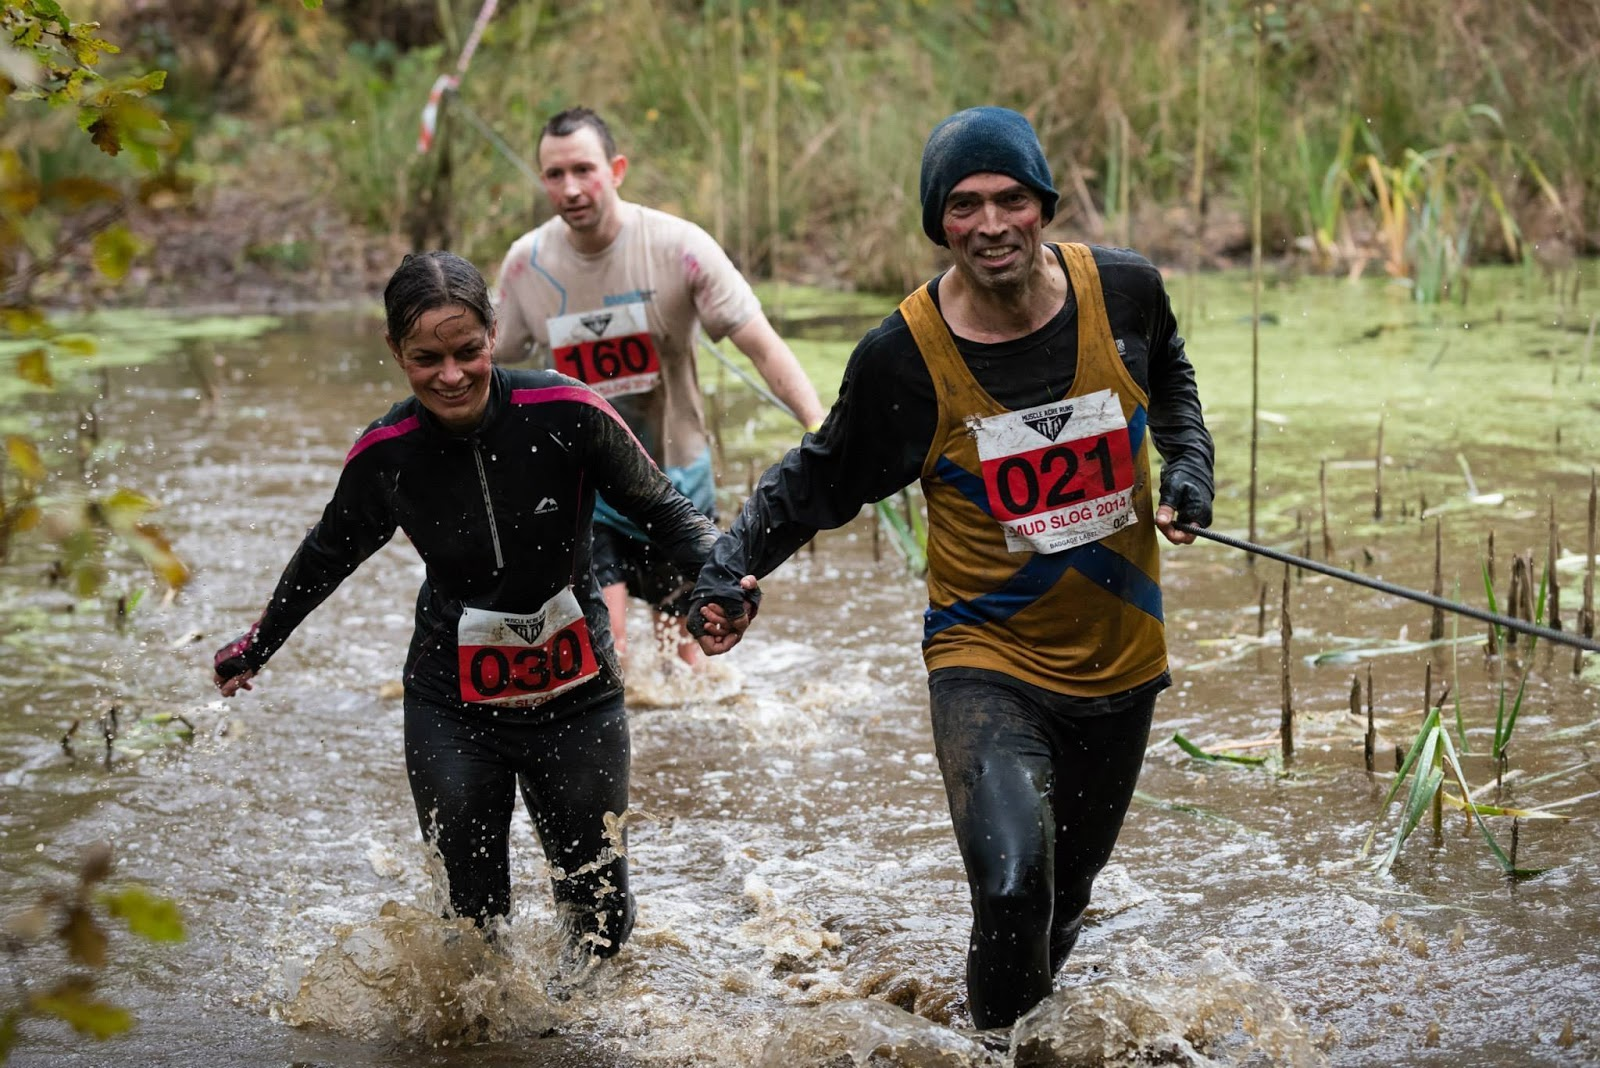 Tom Brake MP dashes through mud once more